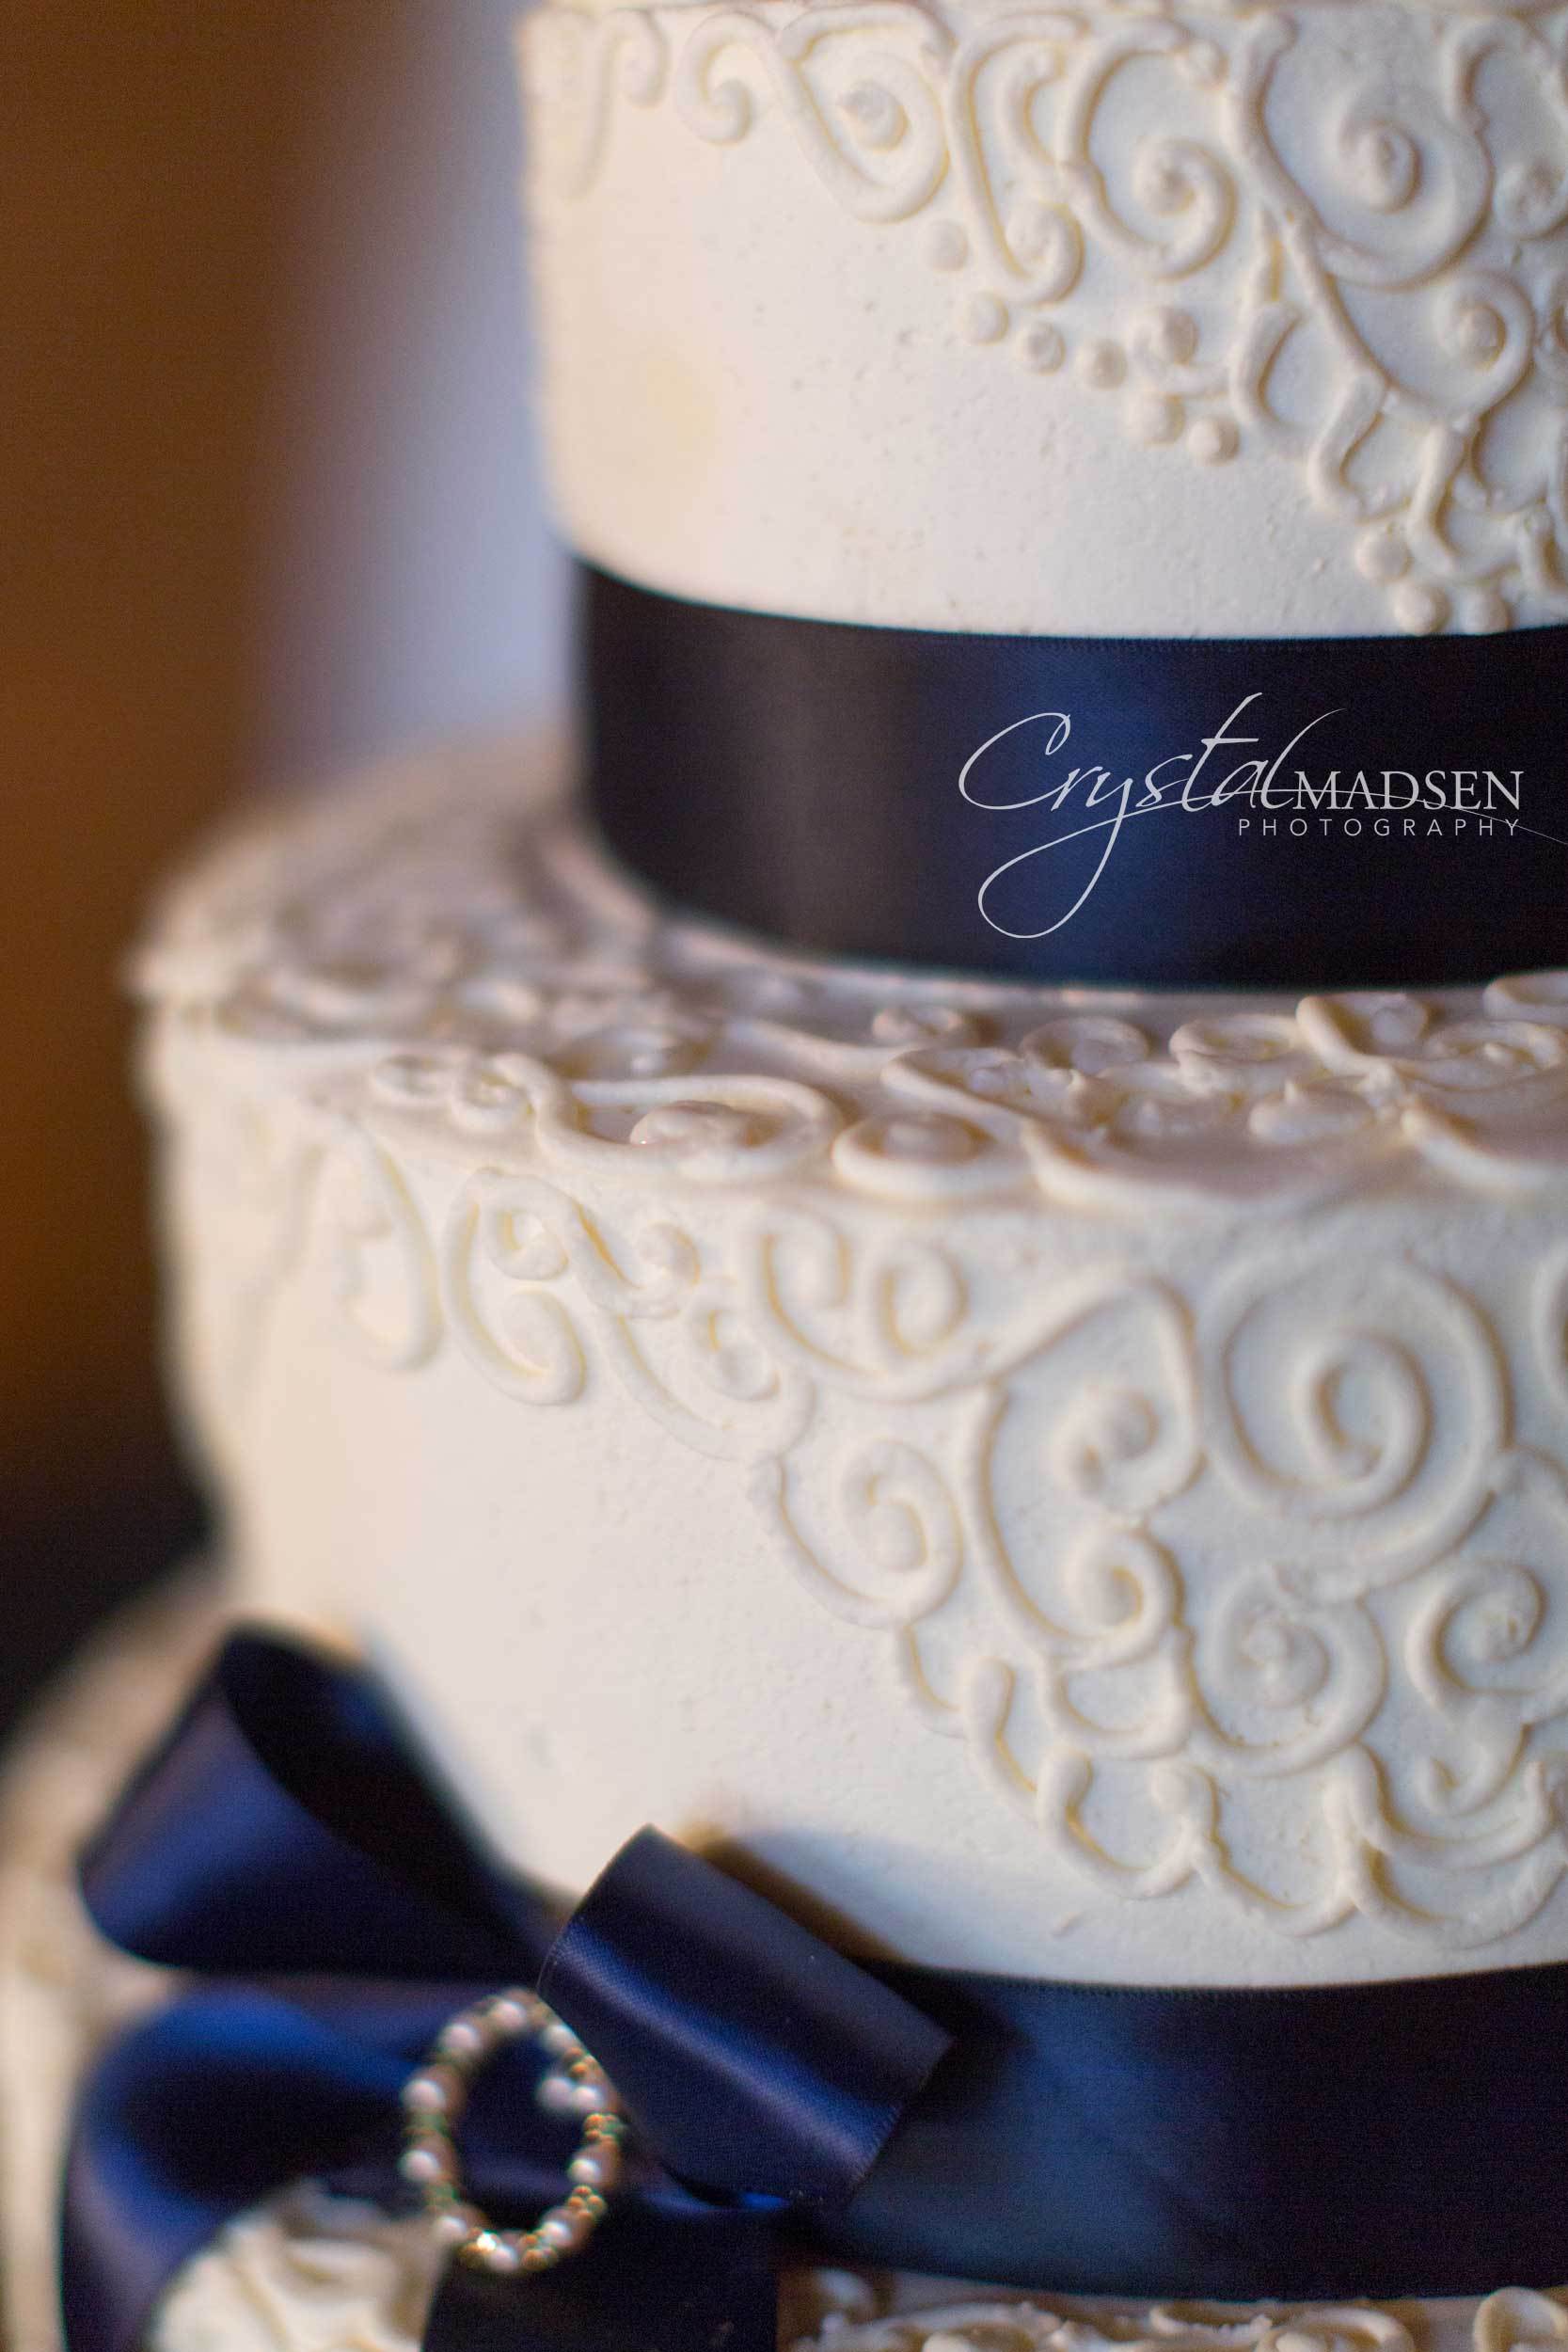 Spokane Wedding Cake and photography